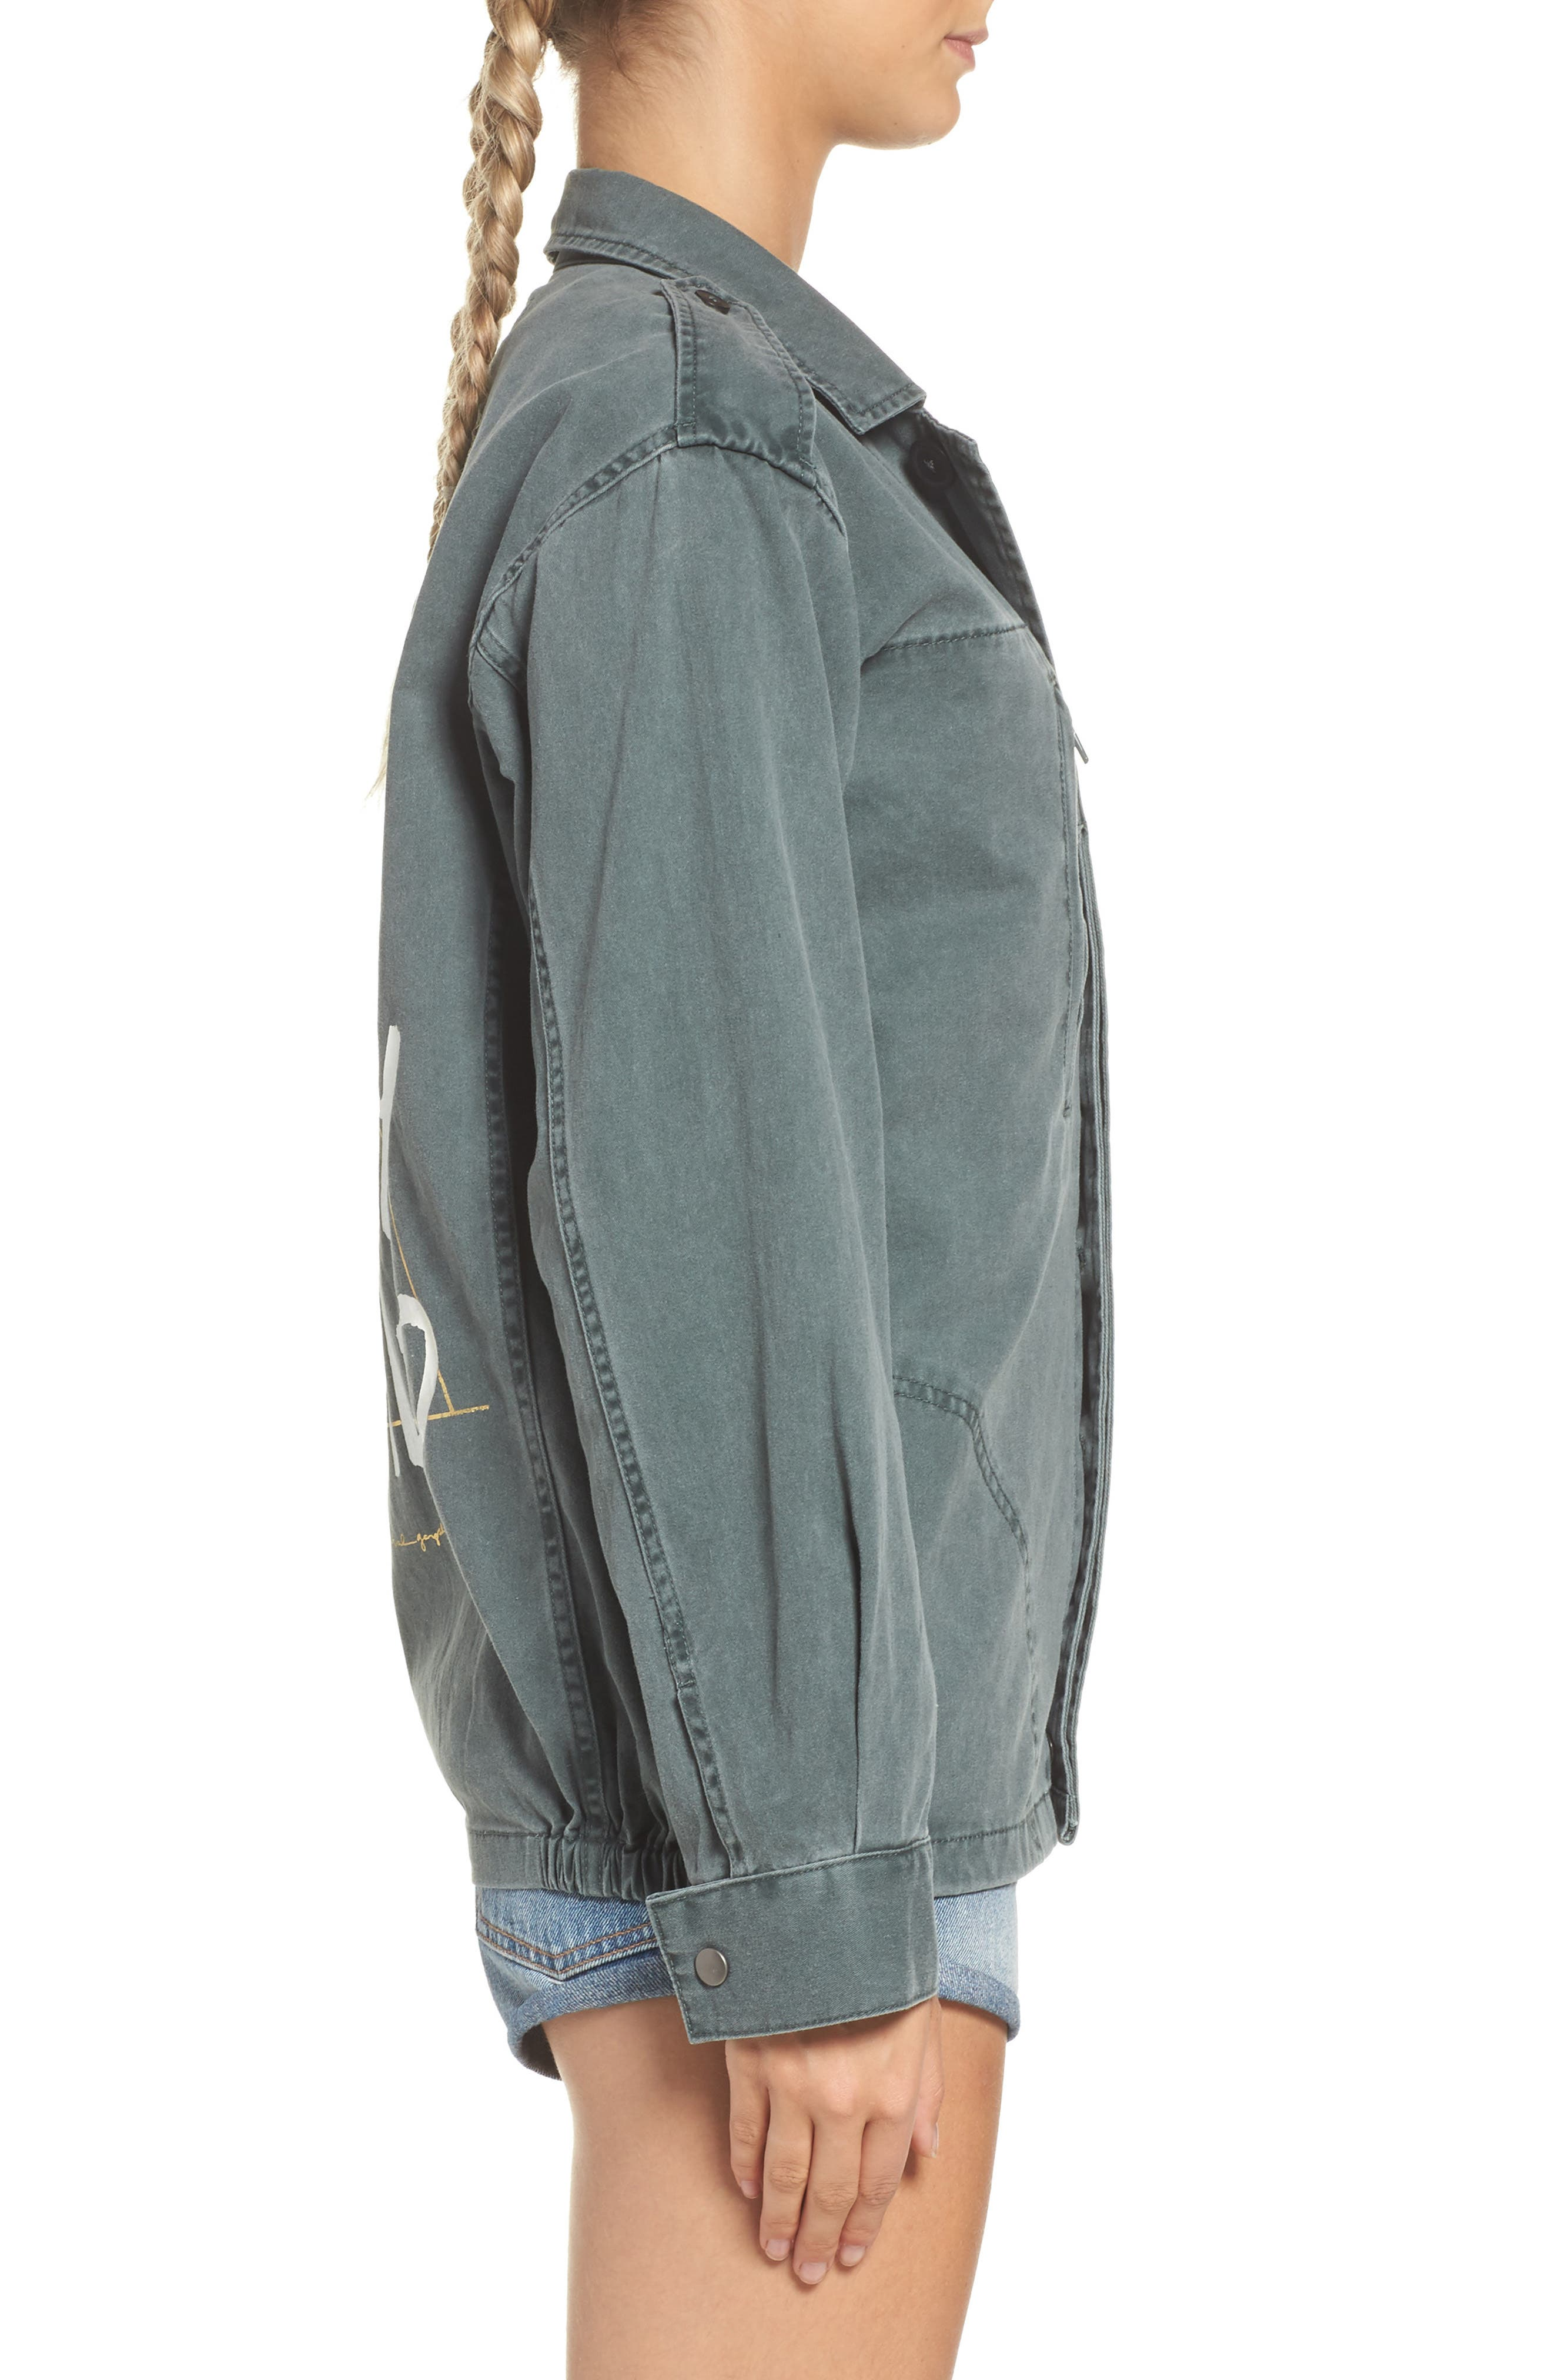 Stay Wild Gypsy Child Amy Jacket,                             Alternate thumbnail 3, color,                             Army